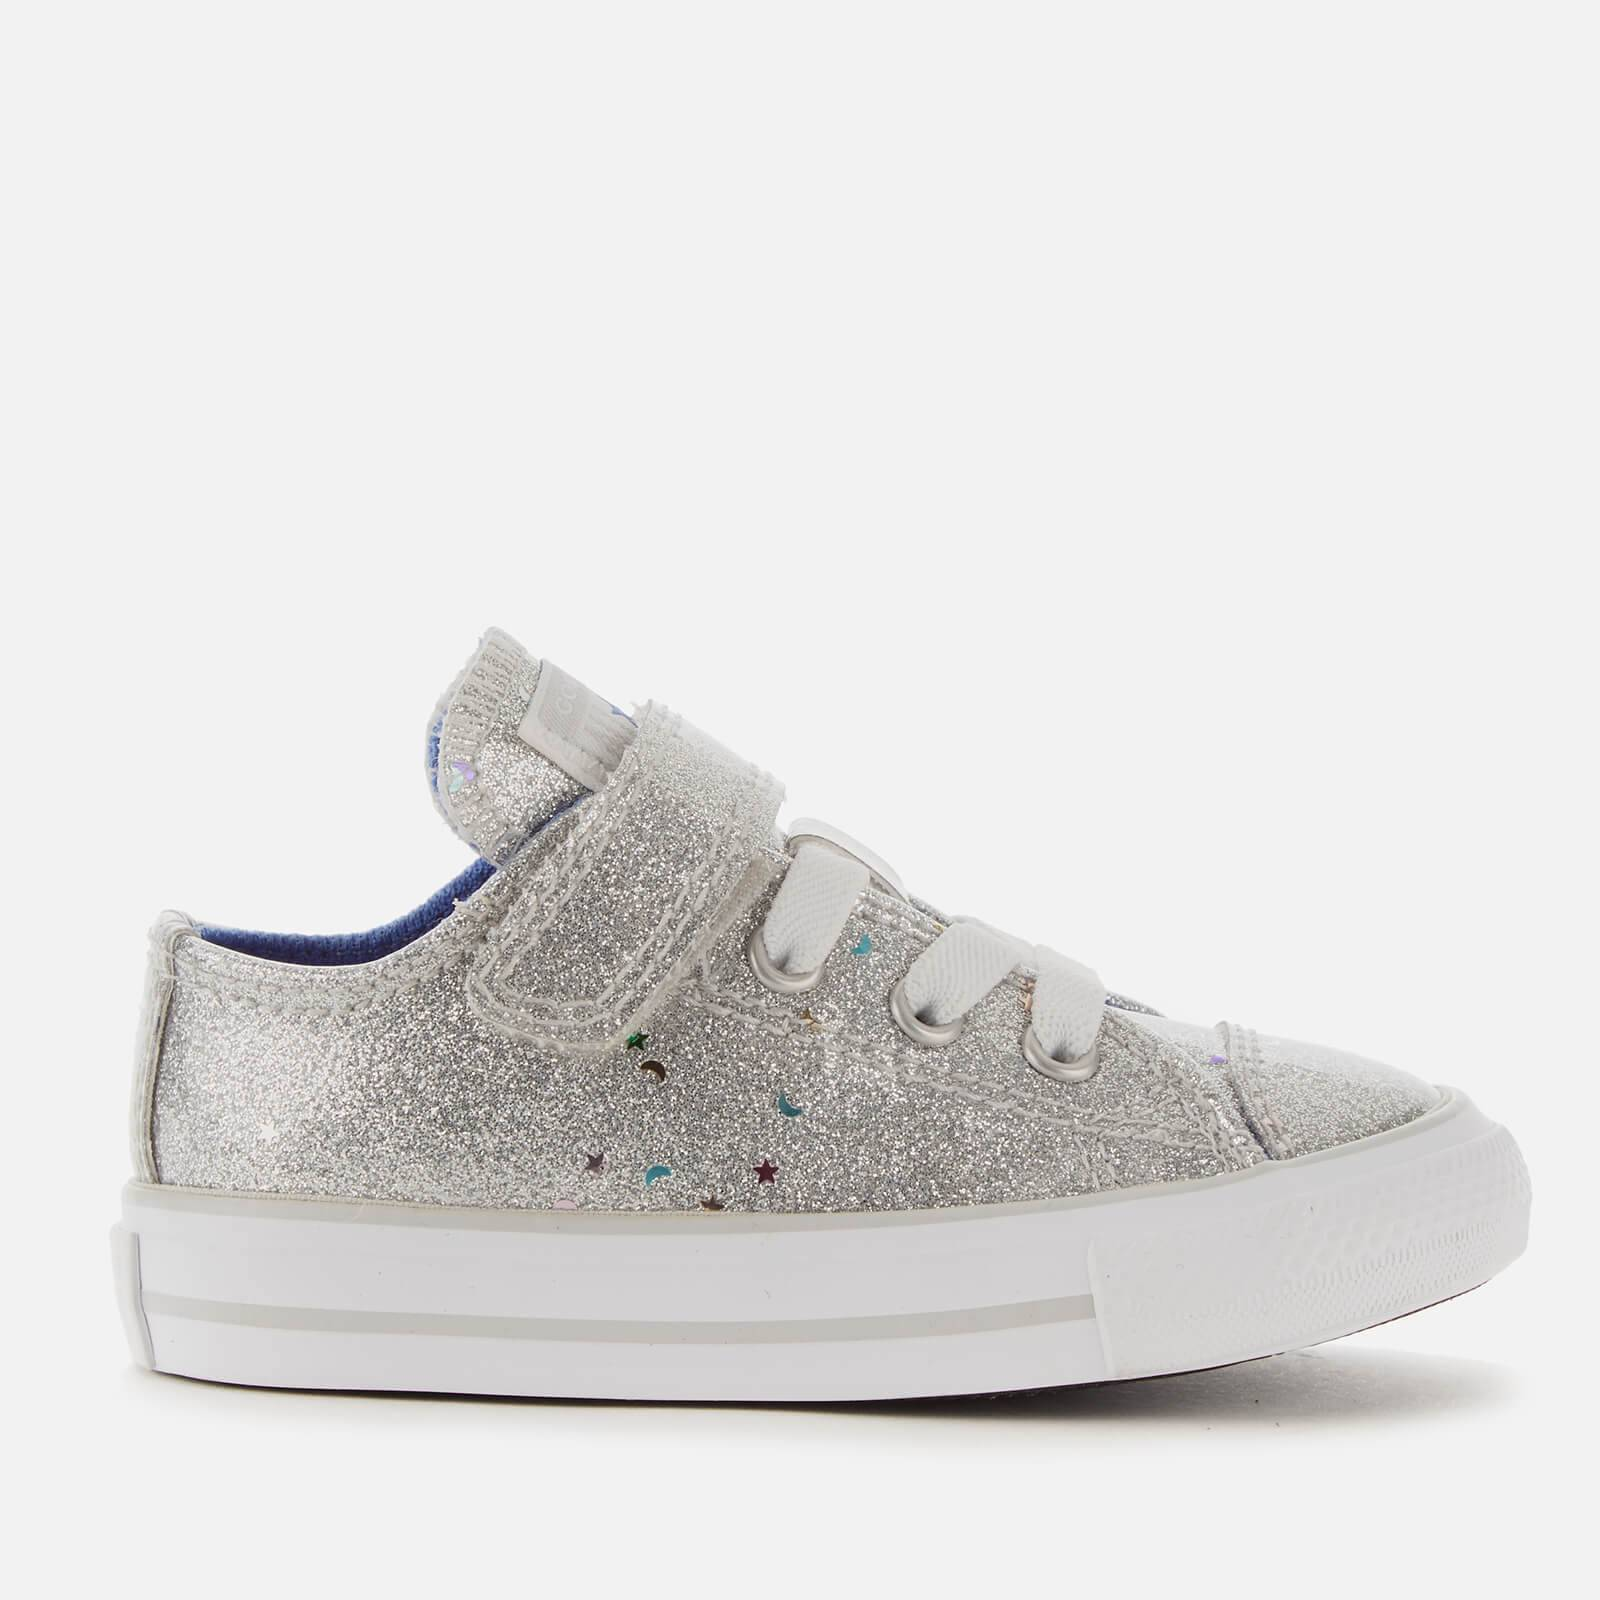 Converse Toddlers' Chuck Taylor All Star 1V Galaxy Glimmer Ox Trainers - Silver/Ozone Blue/White - UK 2 Toddler - Silver